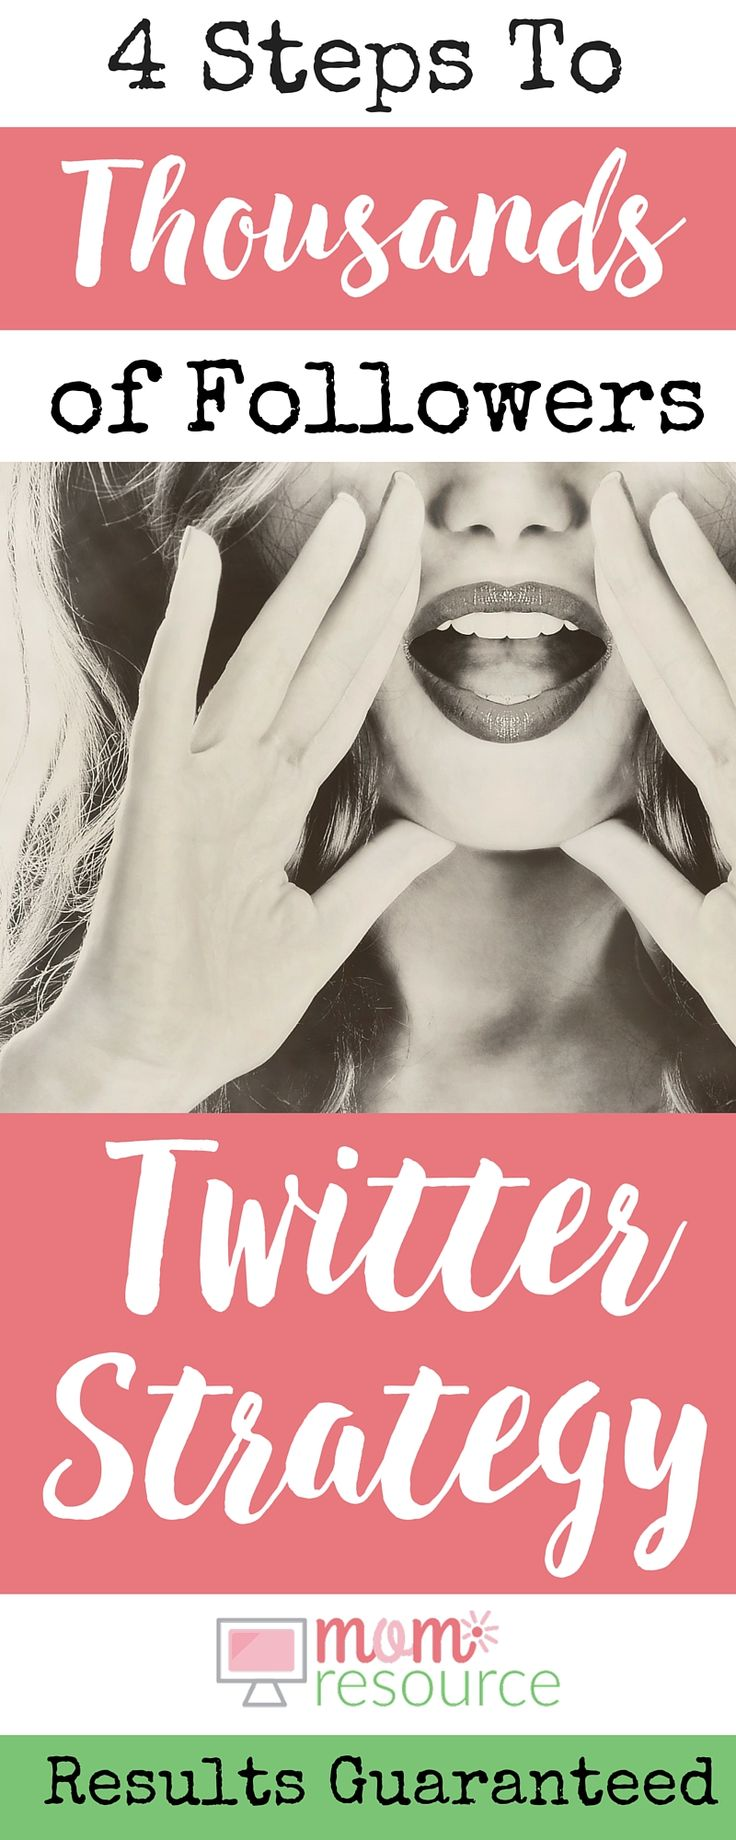 4 Twitter tips will guarantee you grow your followers and increase Twitter interaction.